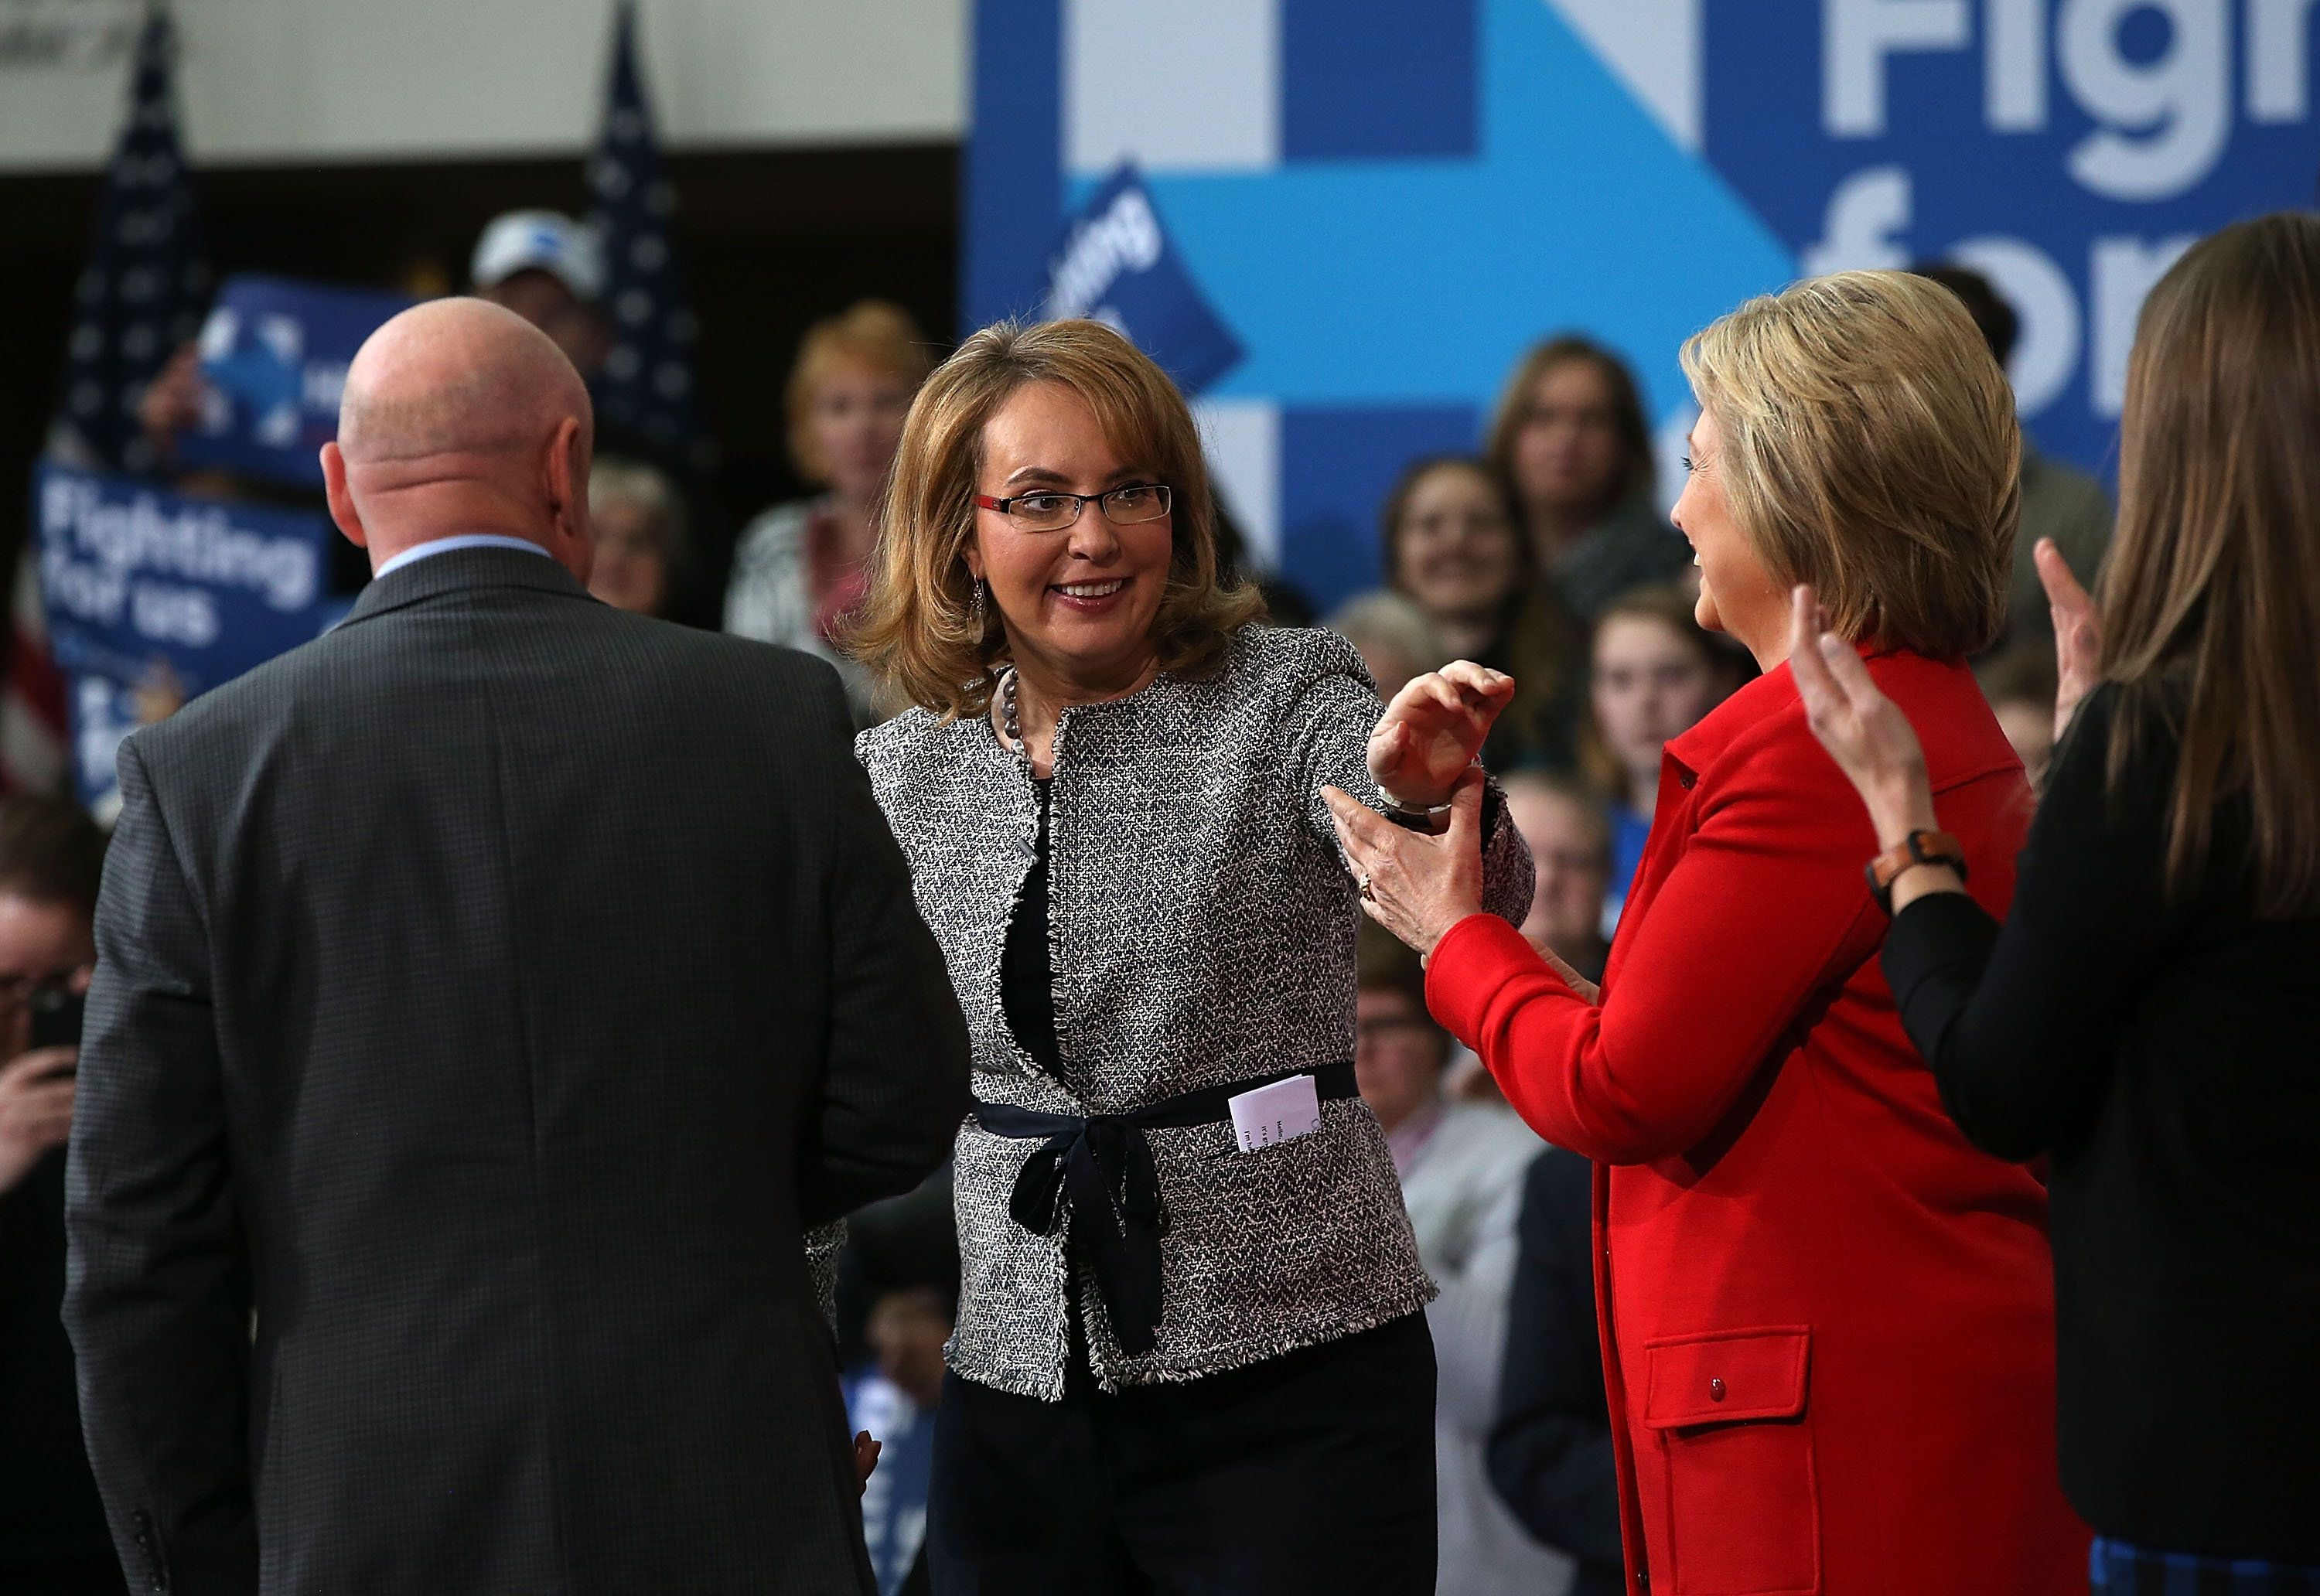 AMES, IA - JANUARY 30:  Former U.S. Sen. Gabrielle Giffords (D-AZ) (C) greets democratic presidential candidate former Secretary of State Hillary Clinton during a 'get out the caucus' event at Iowa State University on January 30, 2016 in Ames, Iowa.  With two days to go before the Iowa caucuses, Hillary Clinton is campaigning throughout Iowa.  (Photo by Justin Sullivan/Getty Images)